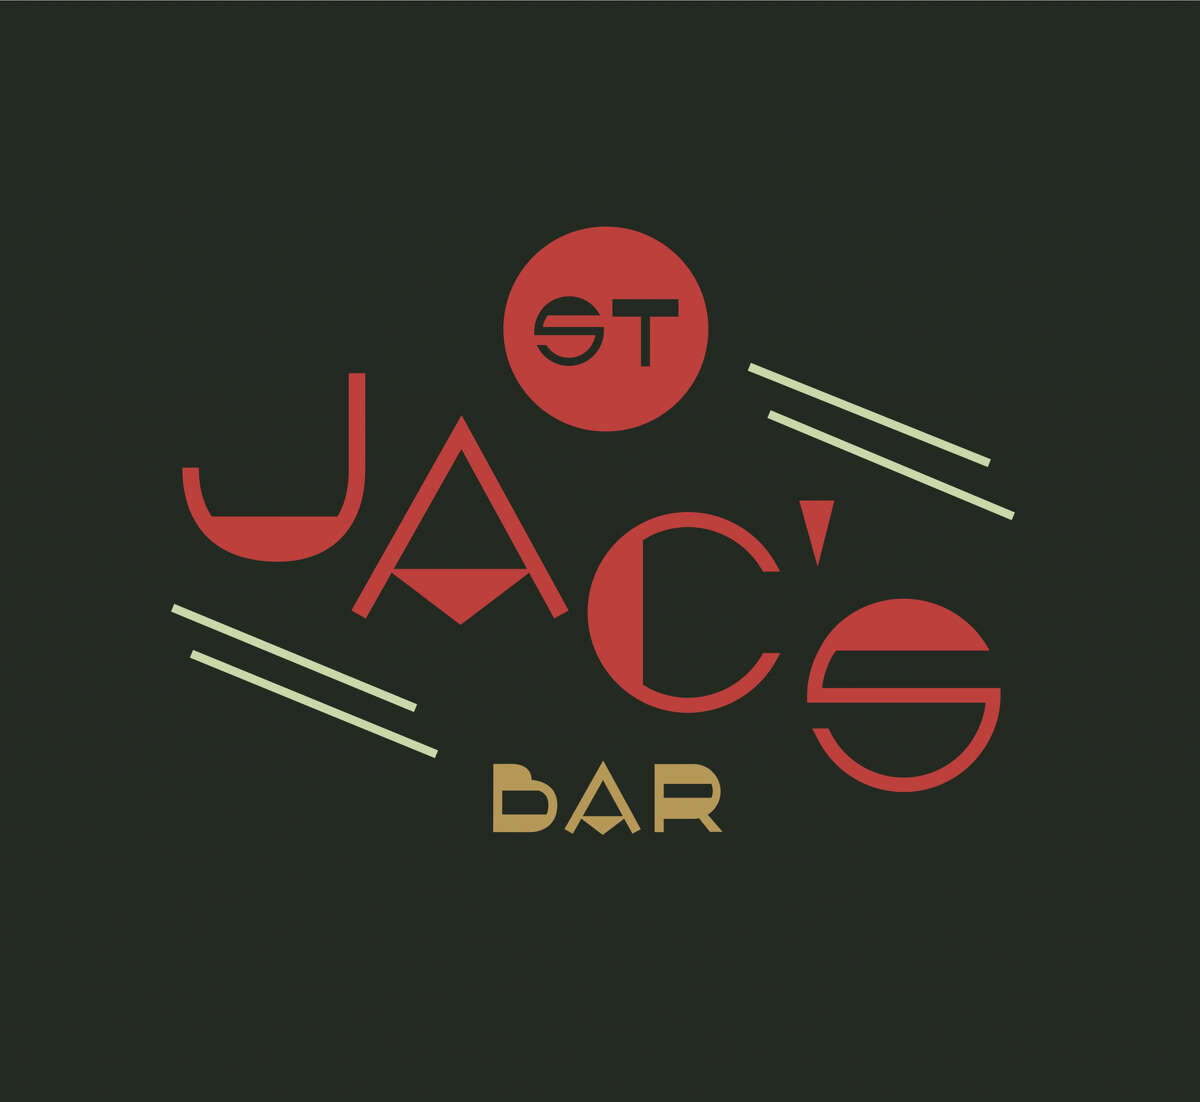 Logo for St. Jac's, a craft cocktail bar in Finn Hall, a new food hall set to open in downtown Houston in 2018.